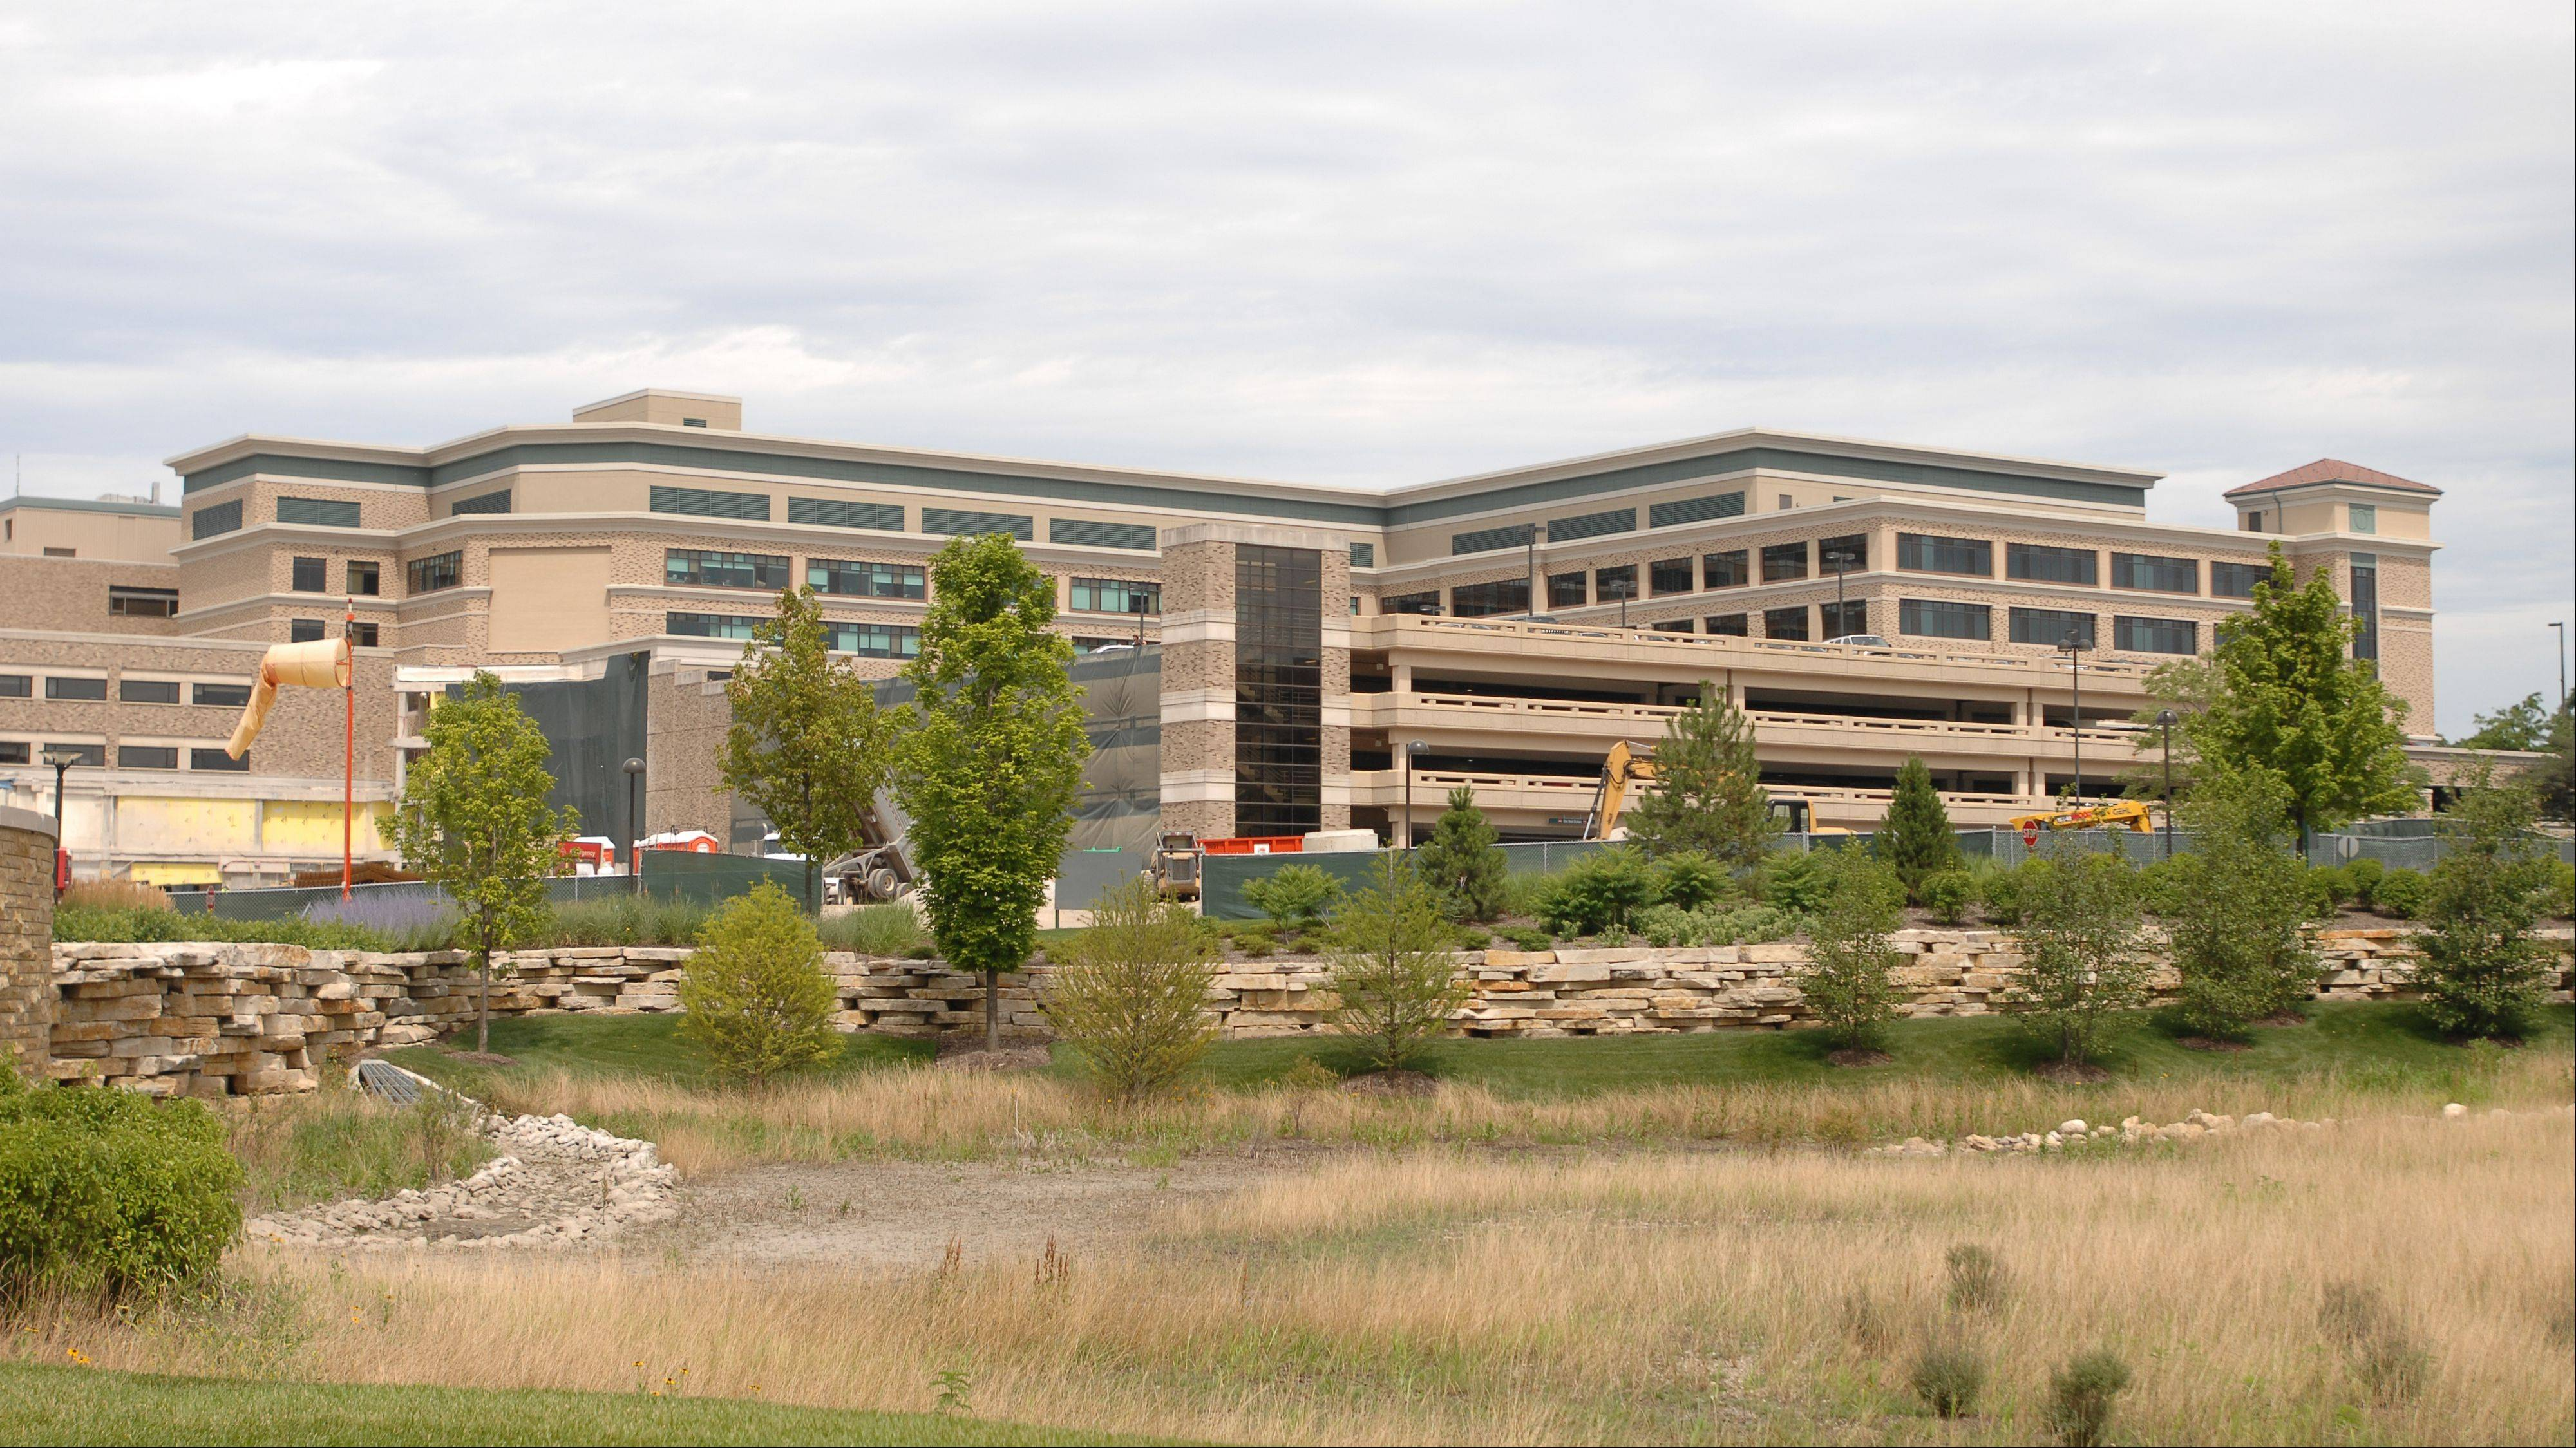 Central DuPage Hospital in Winfield is part of Cadence Health, which announced Wednesday it plans to merge with Rockford Health System. CDH formed Cadence in a 2011 merger with Delnor Community Health System in Geneva.